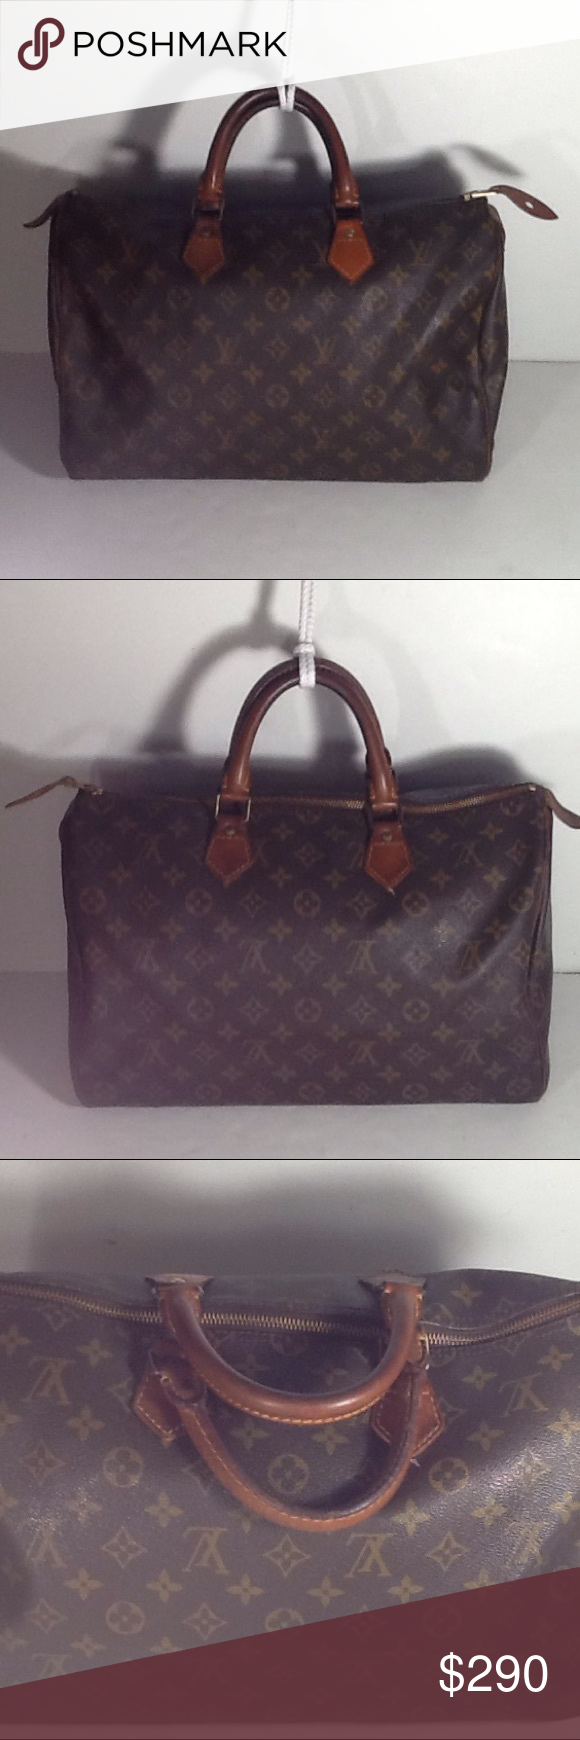 how to authenticate a louis vuitton speedy